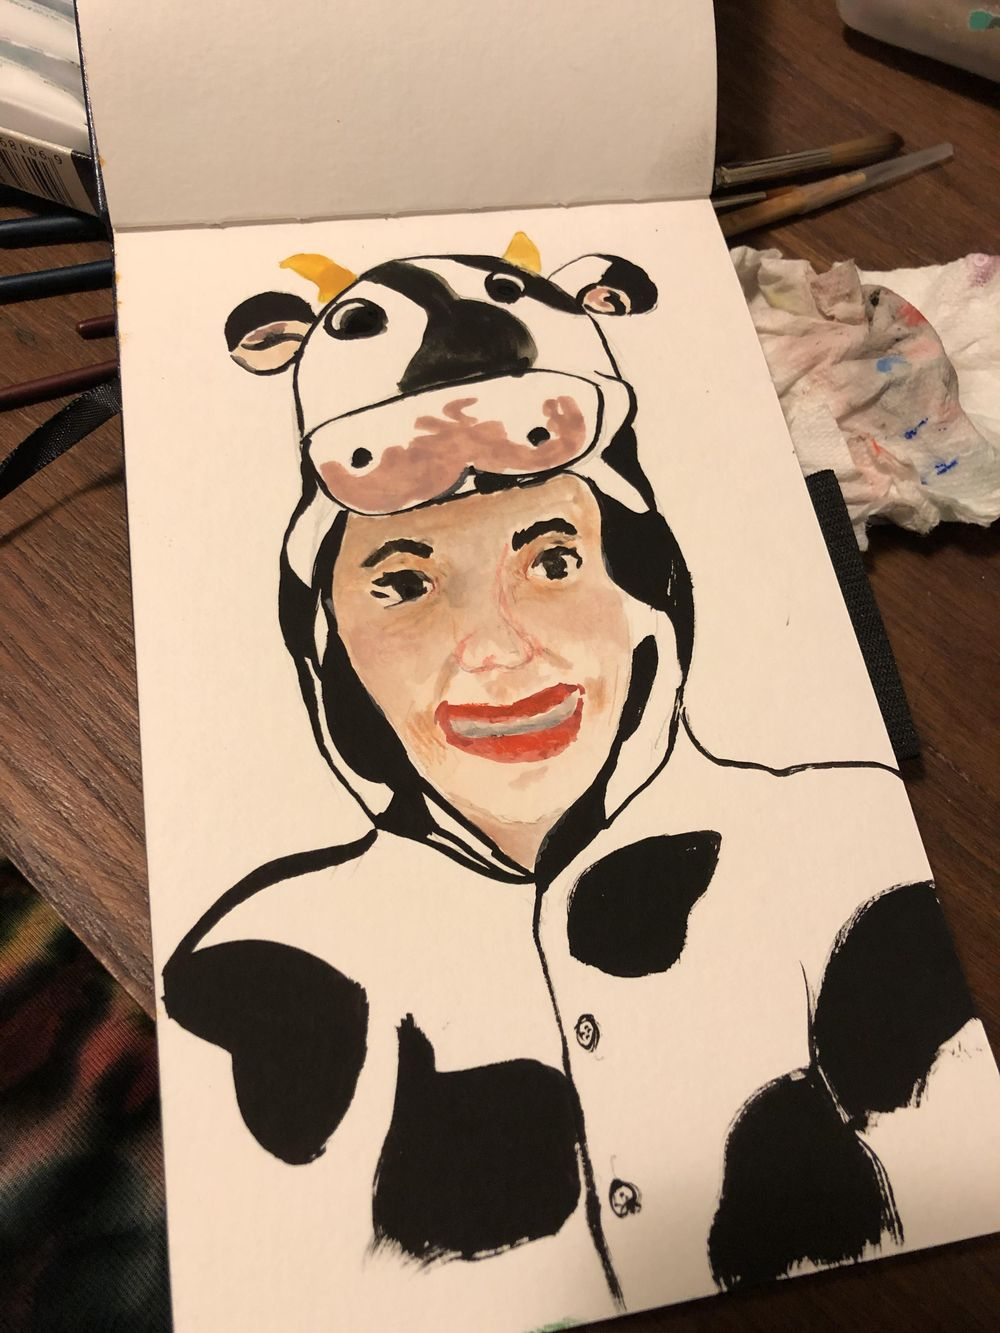 I love cows - image 1 - student project